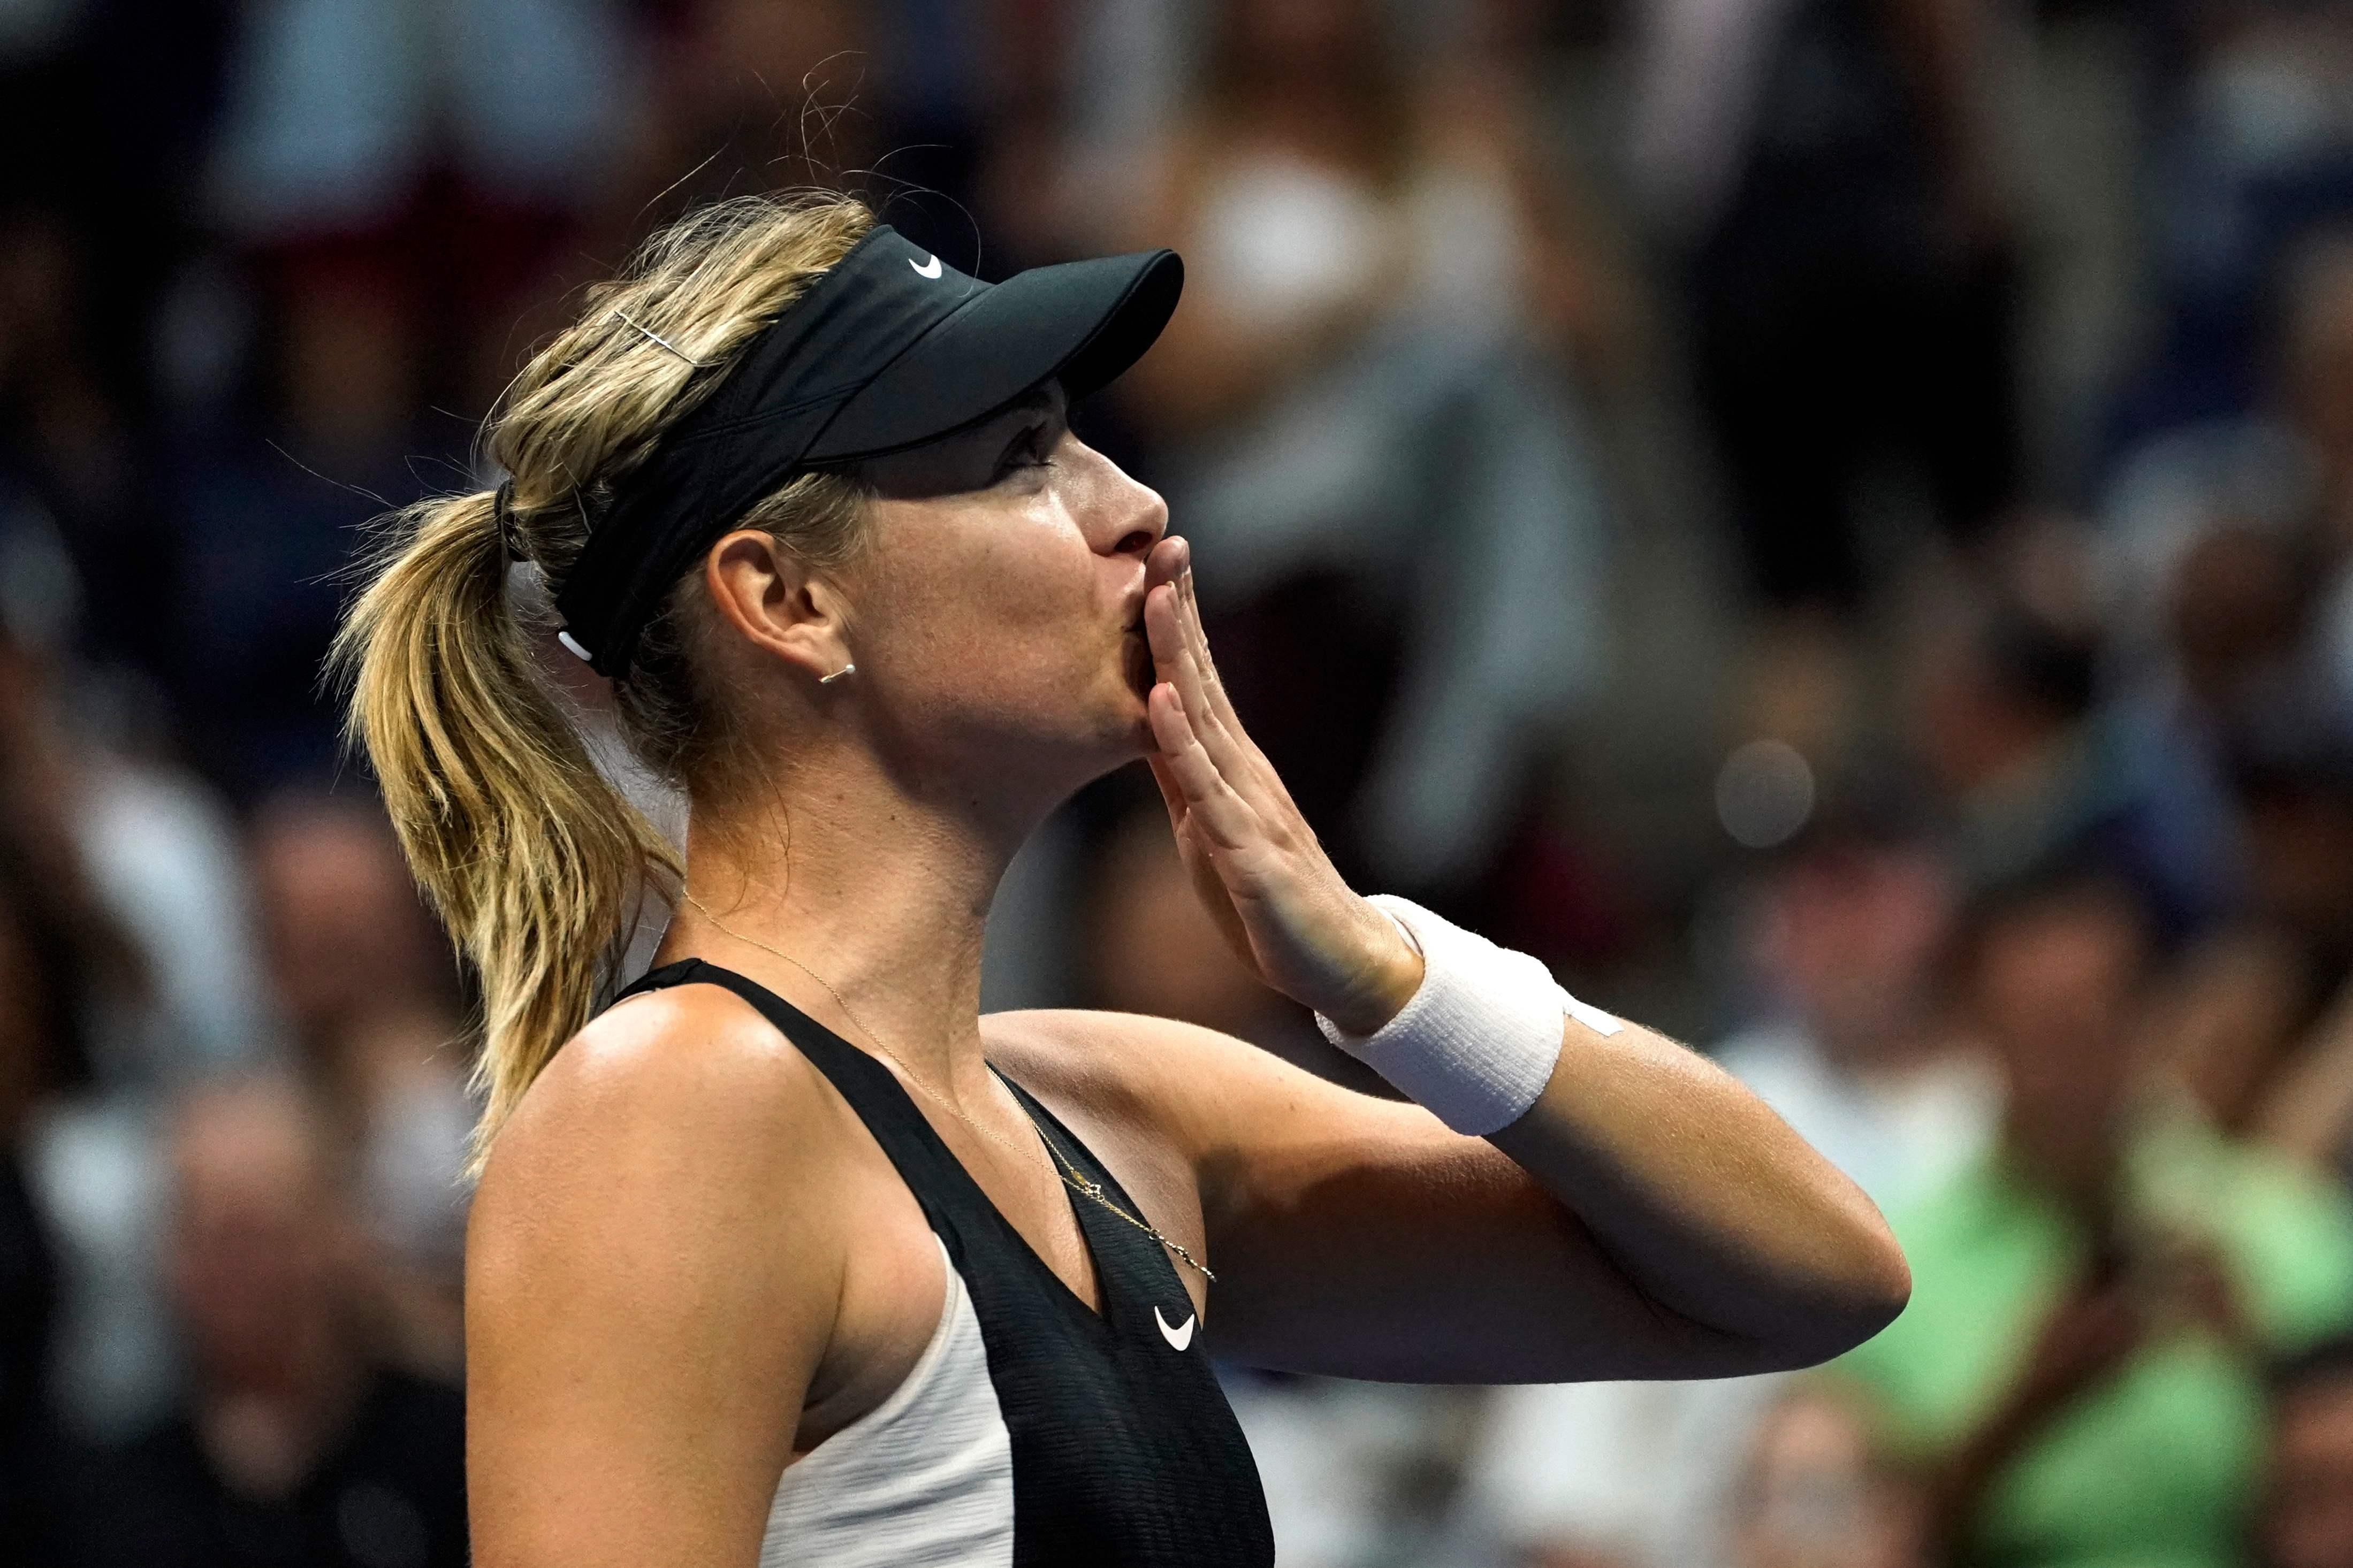 Maria Sharapova reached the last-16 of the US Open after beating Jelena Ostapenko